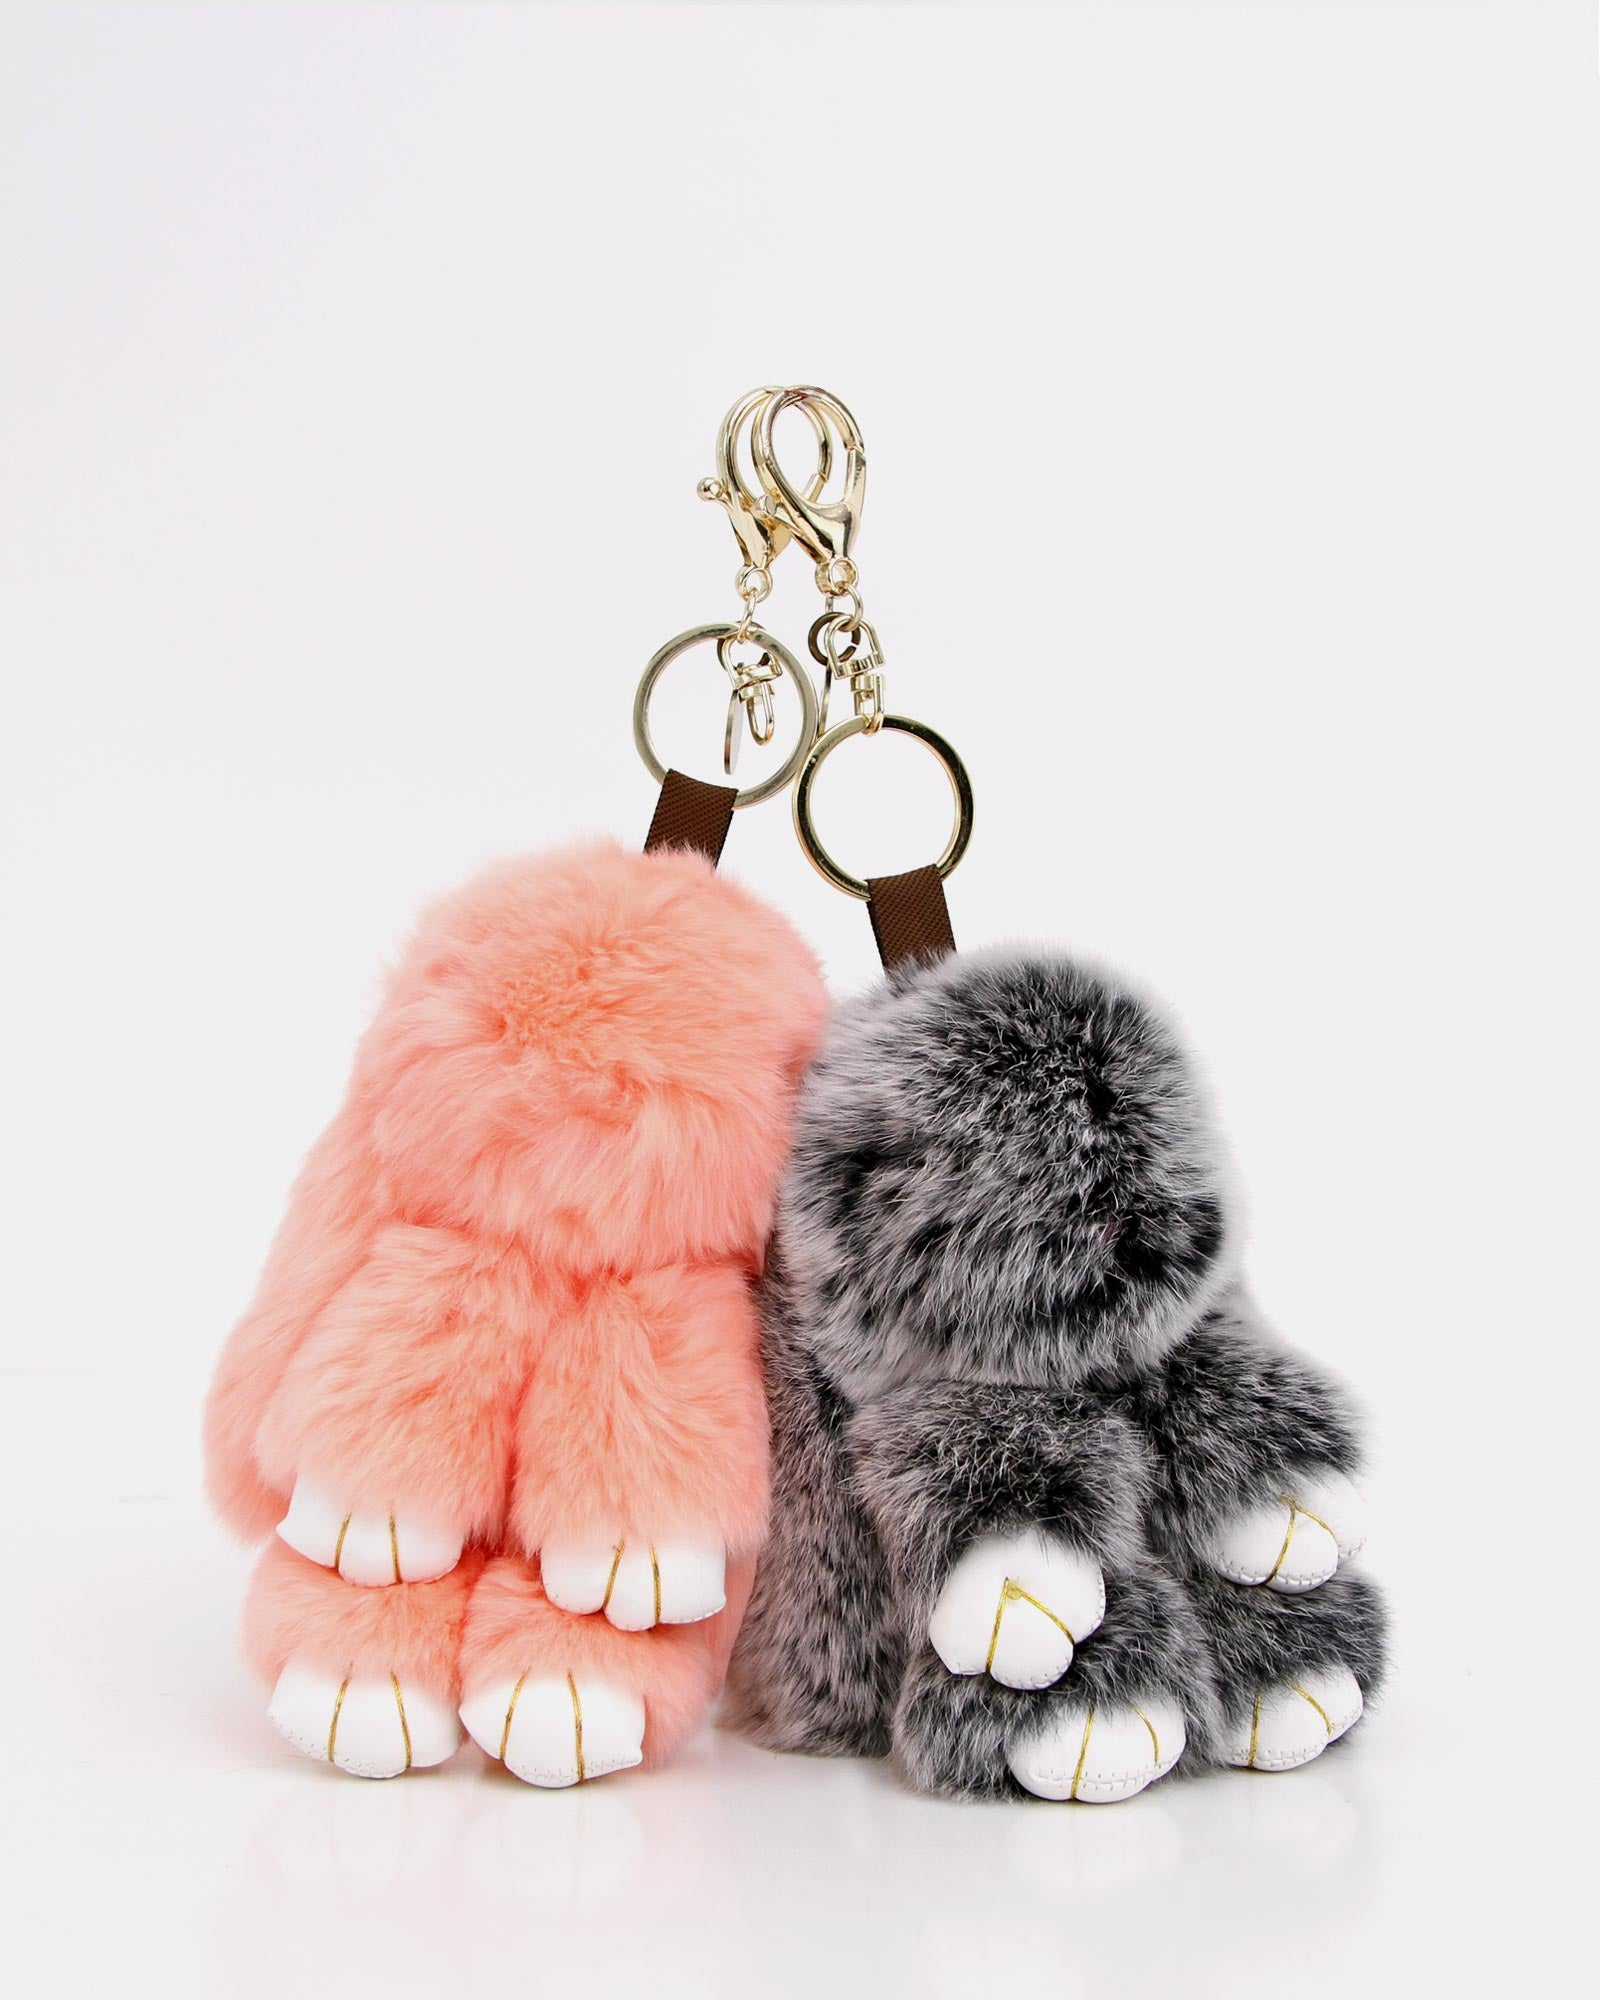 Faux Fur Bunny Keychain 2 Pack 3